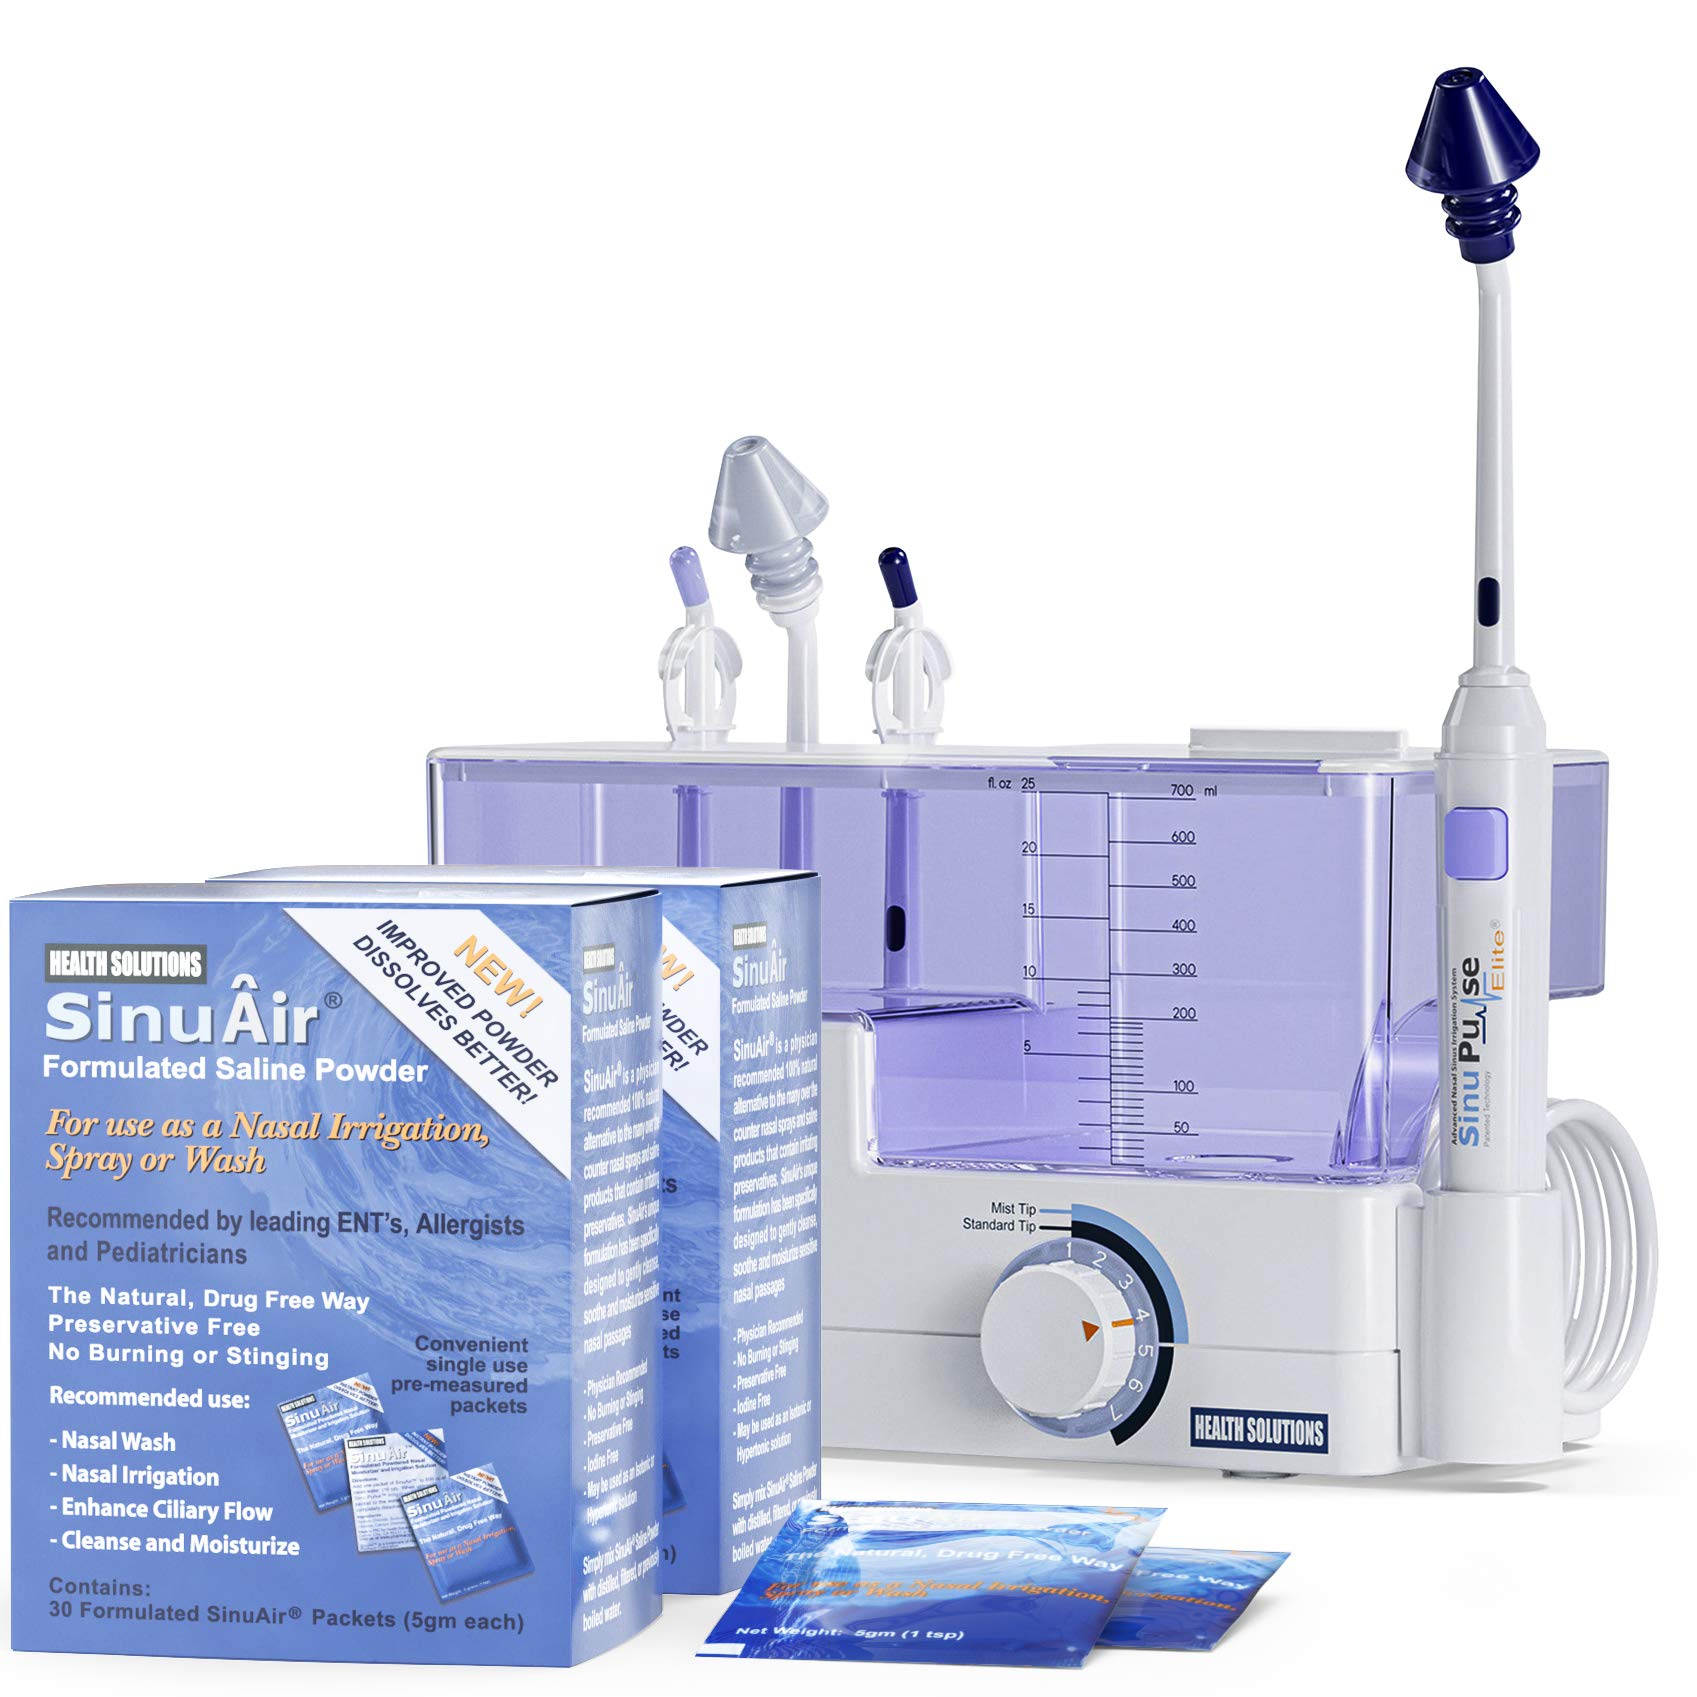 SinuPulse Elite Advanced Nasal Irrigation System with 60 Additional SinuAir Packets